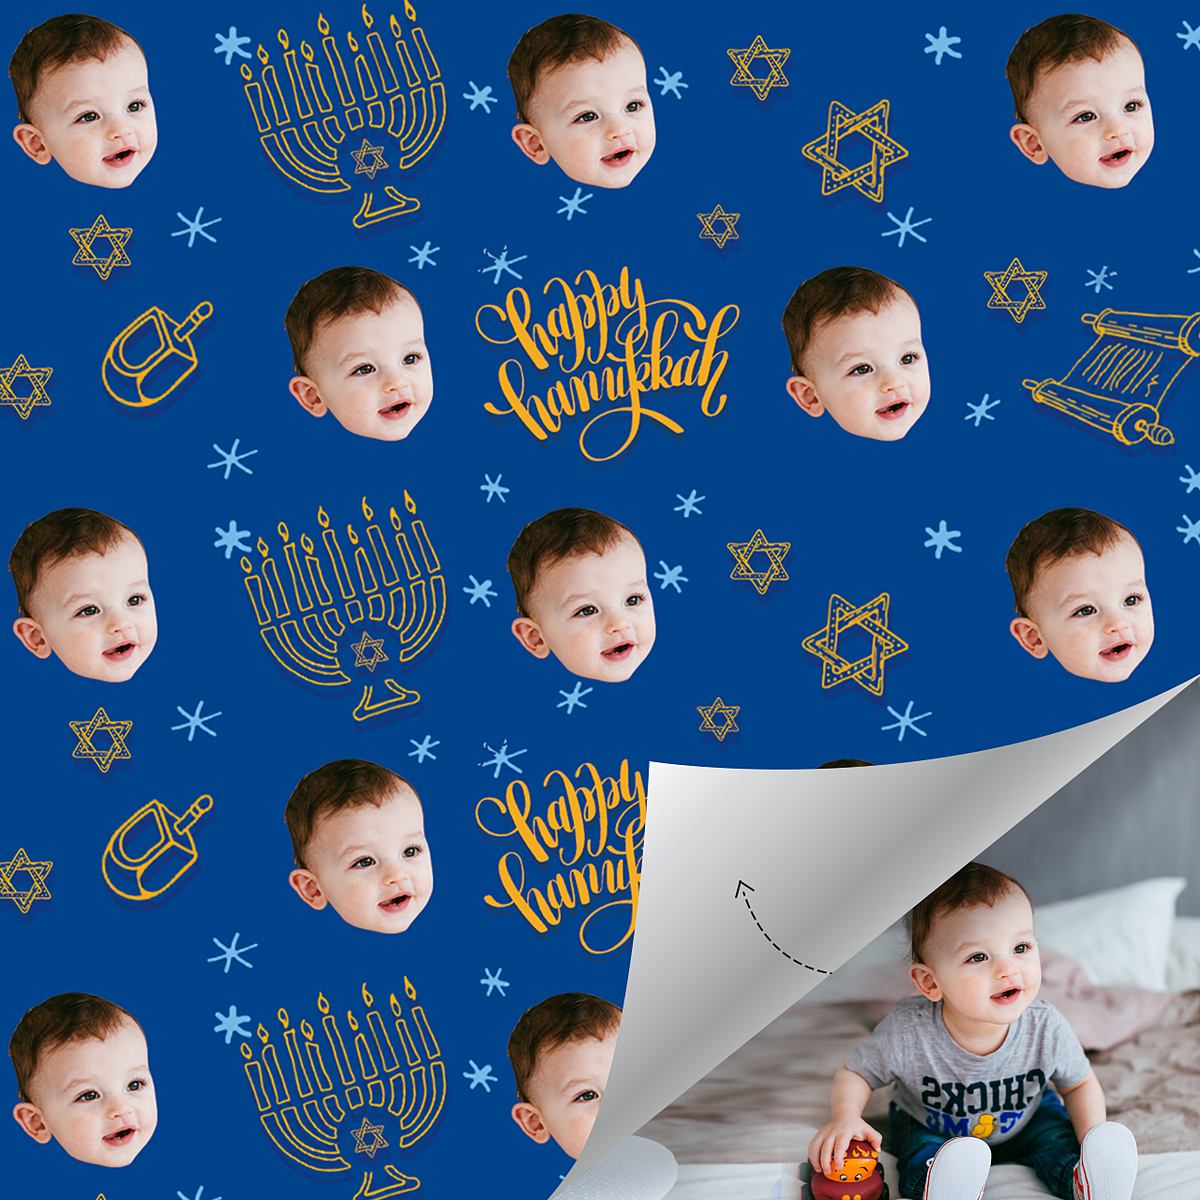 Custom Face Gift Wrap-Happy Hanukkah